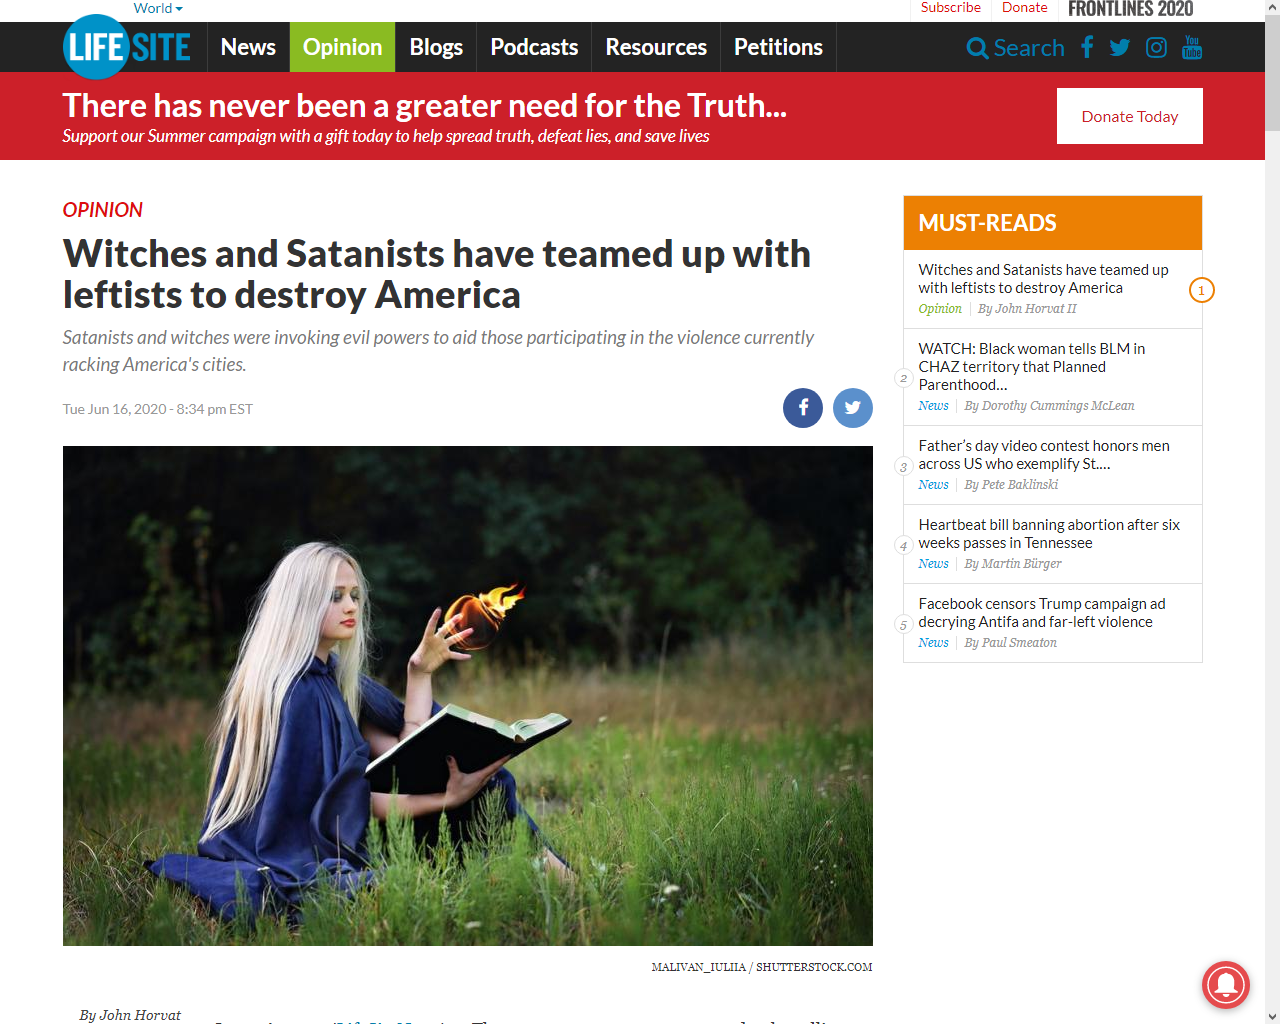 https://www.lifesitenews.com/opinion/witches-and-satanists-have-teamed-up-with-leftists-to-destroy-america